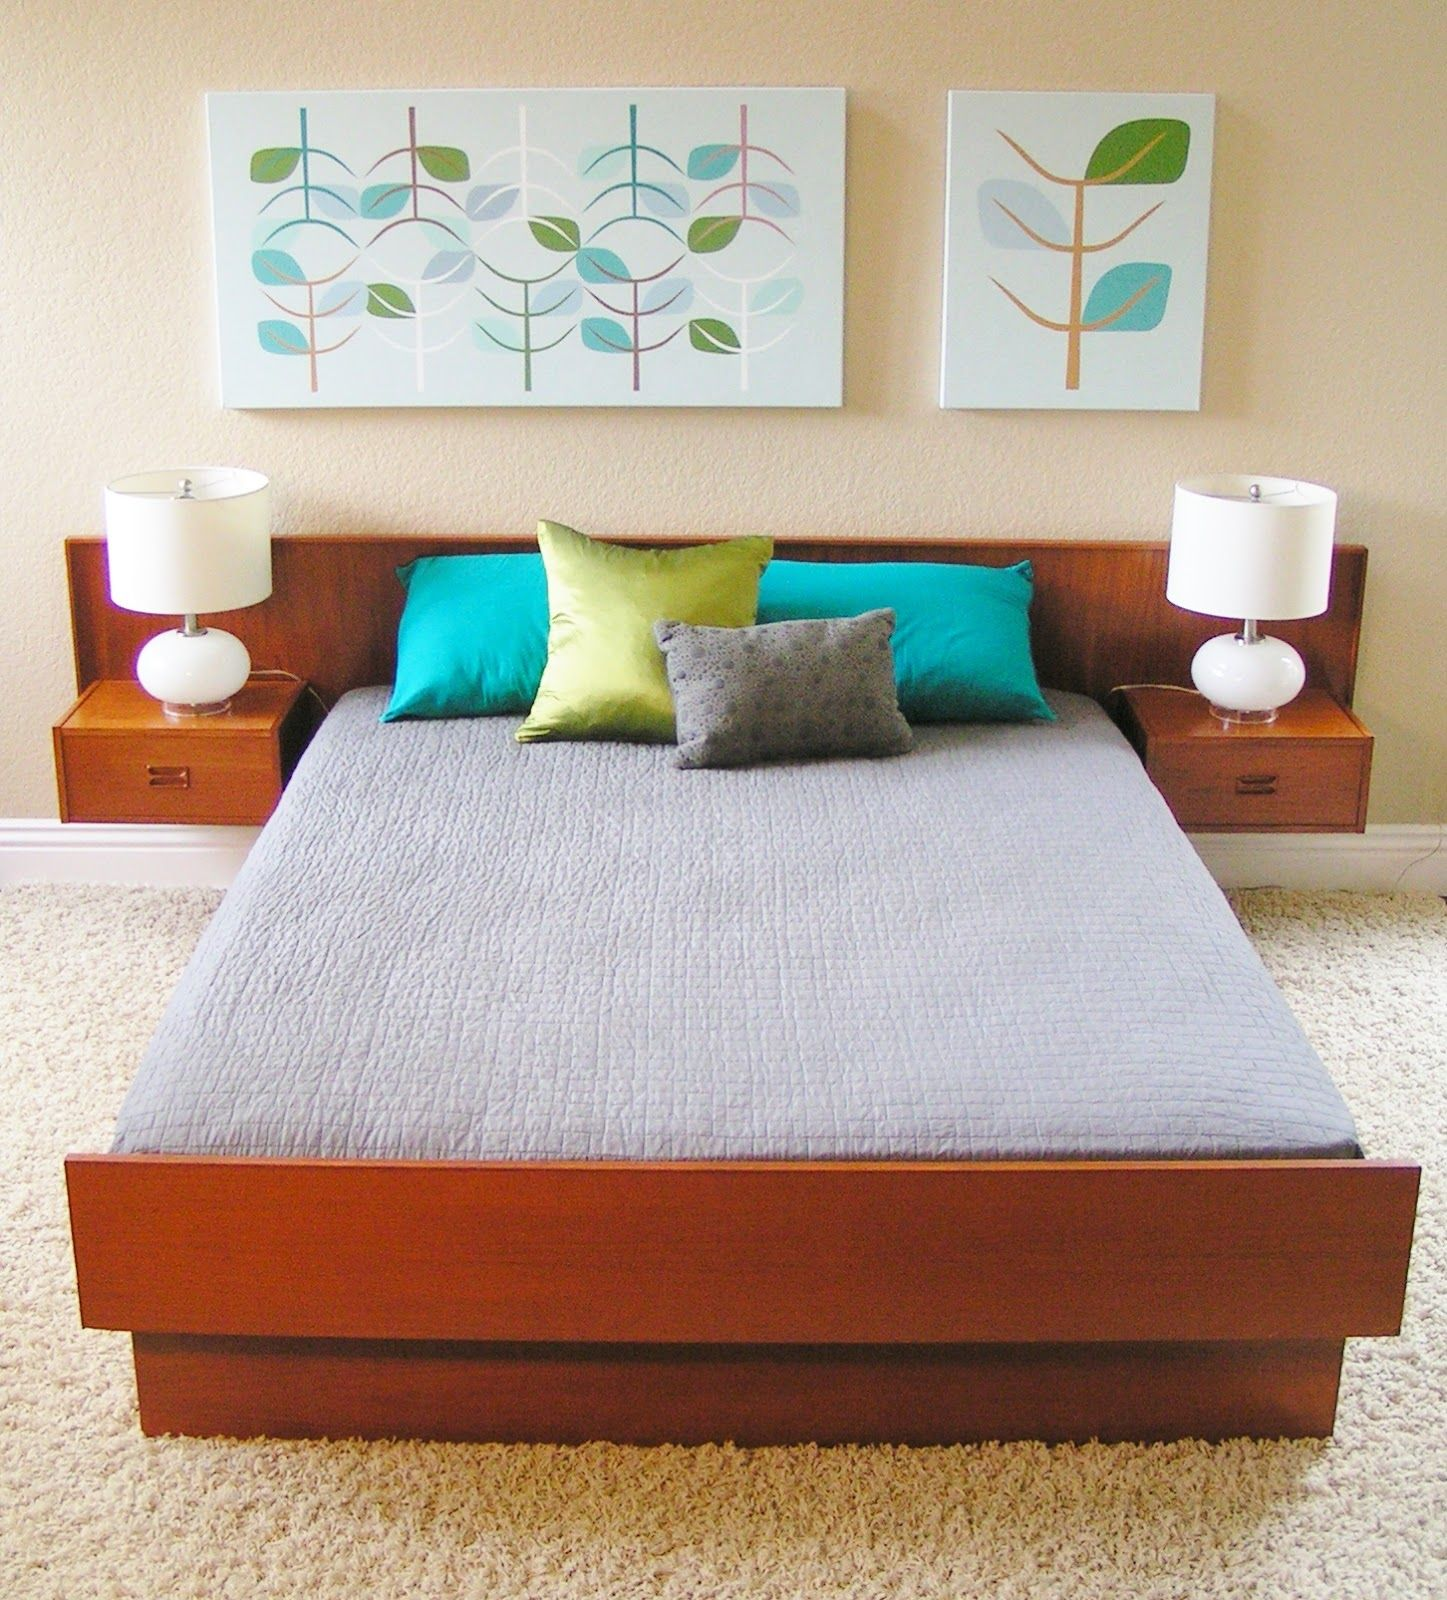 Vintage Mid Century Danish Modern Queen Teak Platform Bed With Floating End  Tables sleekandsimplelines@gmail